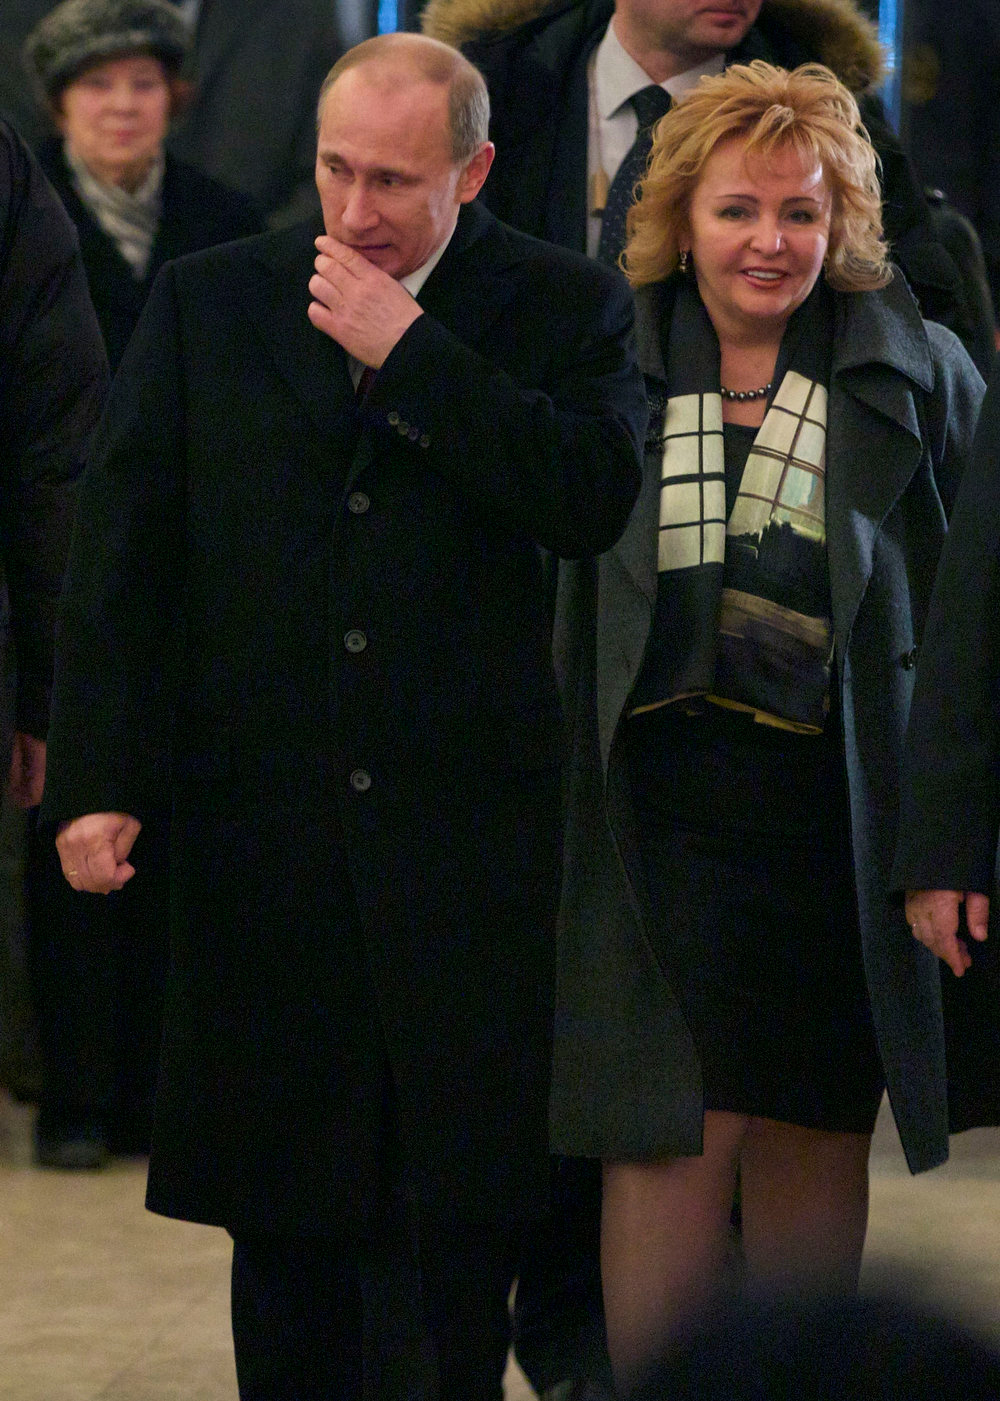 . Then Russian Prime Minister and presidential candidate Vladimir Putin and his wife Lyudmila arrive at a polling station in Moscow, Russia March 4, 2012. Russian President Vladimir Putin and his wife Lyudmila have announced they are divorcing. Married just a few weeks short of 30 years, the Putins announced the decision on state television after attending a ballet performance Thursday evening in the Kremlin.(AP Photo/Ivan Sekretarev, file)